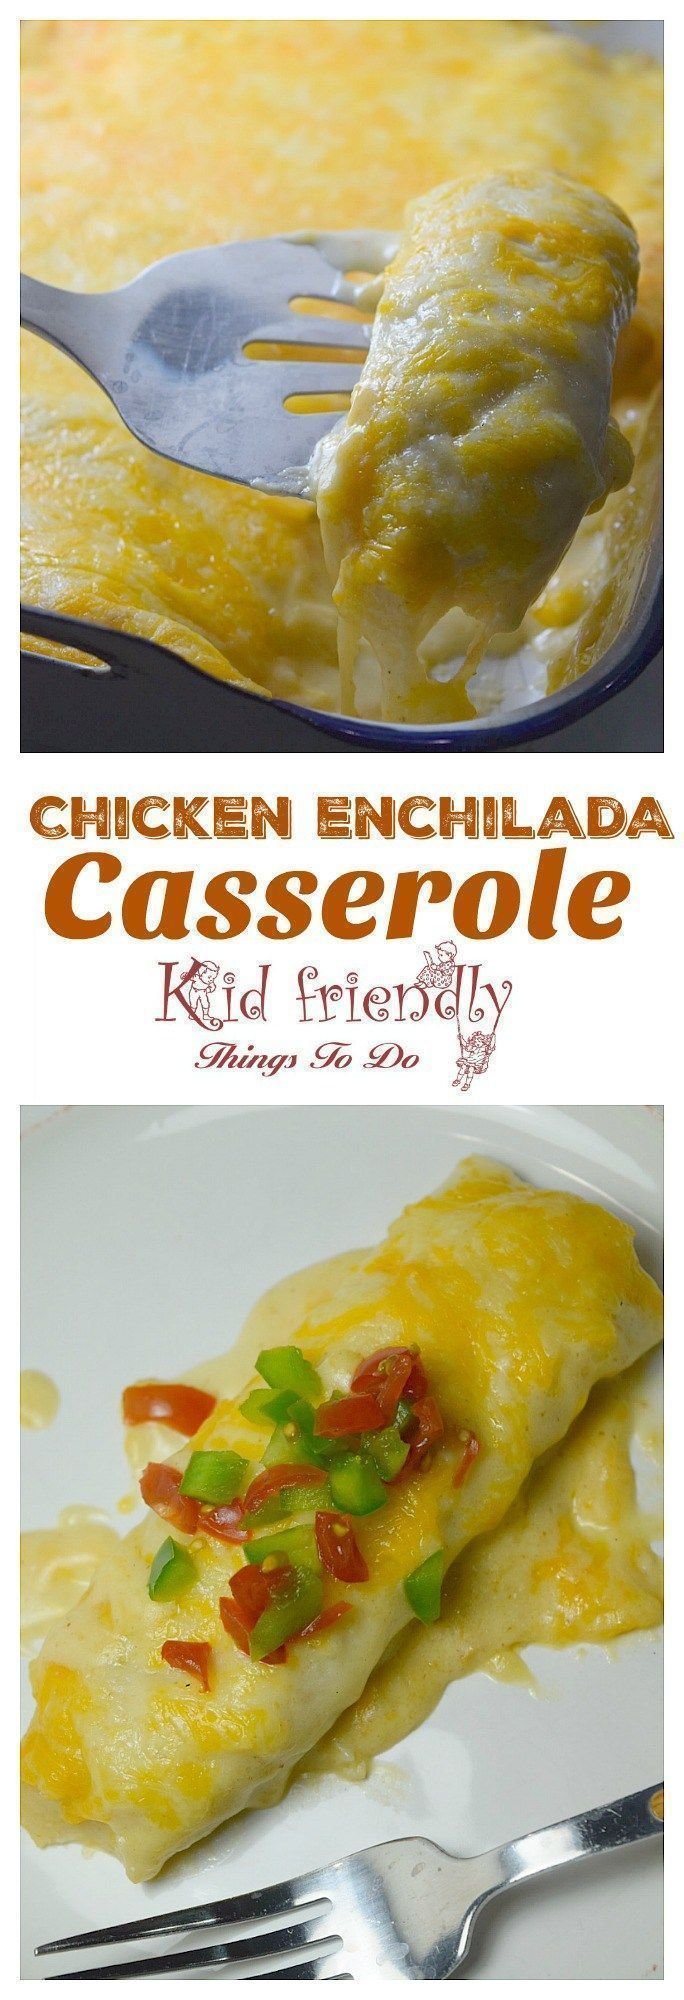 ... Kids on Pinterest | Crescent dogs, Applesauce muffins and How to cook